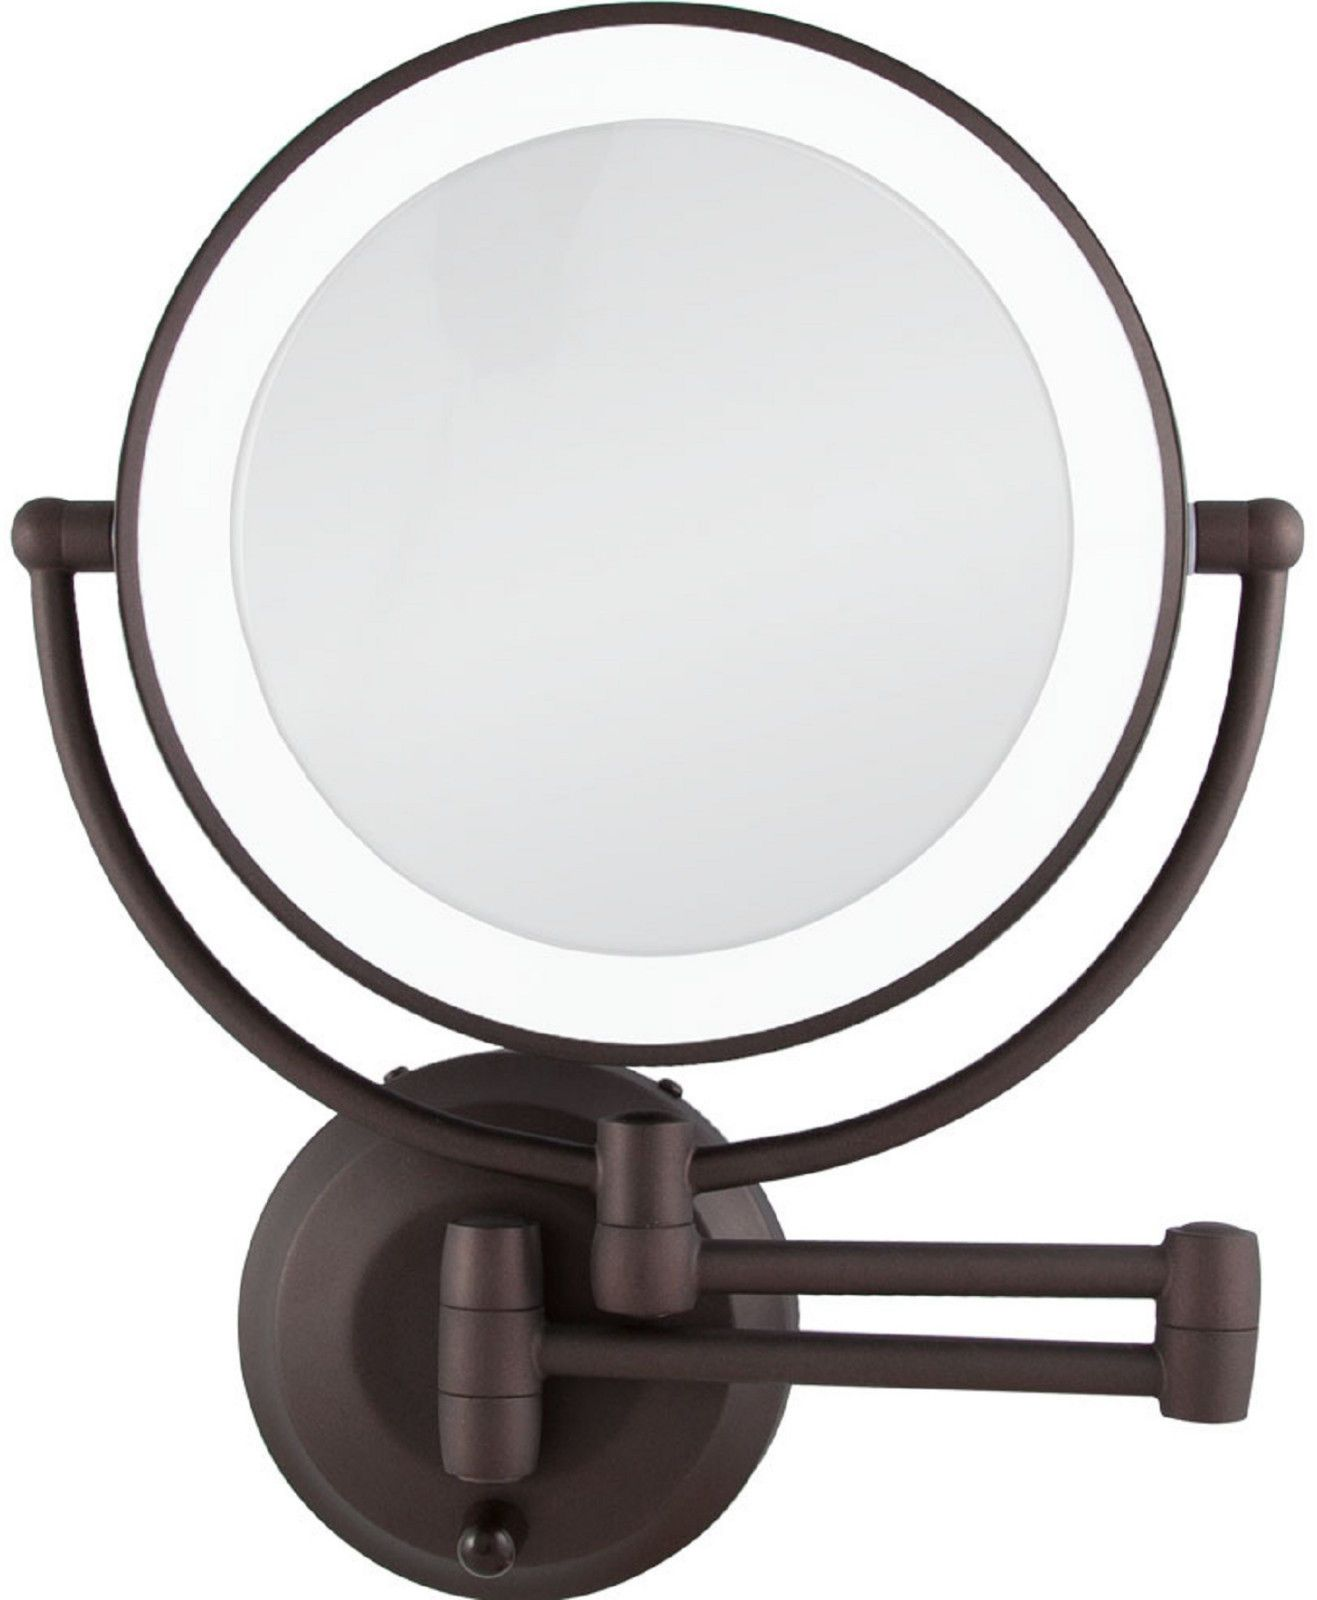 Zadro 1x 10x Cordless Led Lighted Wall Mount Makeup Mirror Ledw810 Bronze New Wall Mounted Makeup Mirror Lighted Wall Mirror Mirror